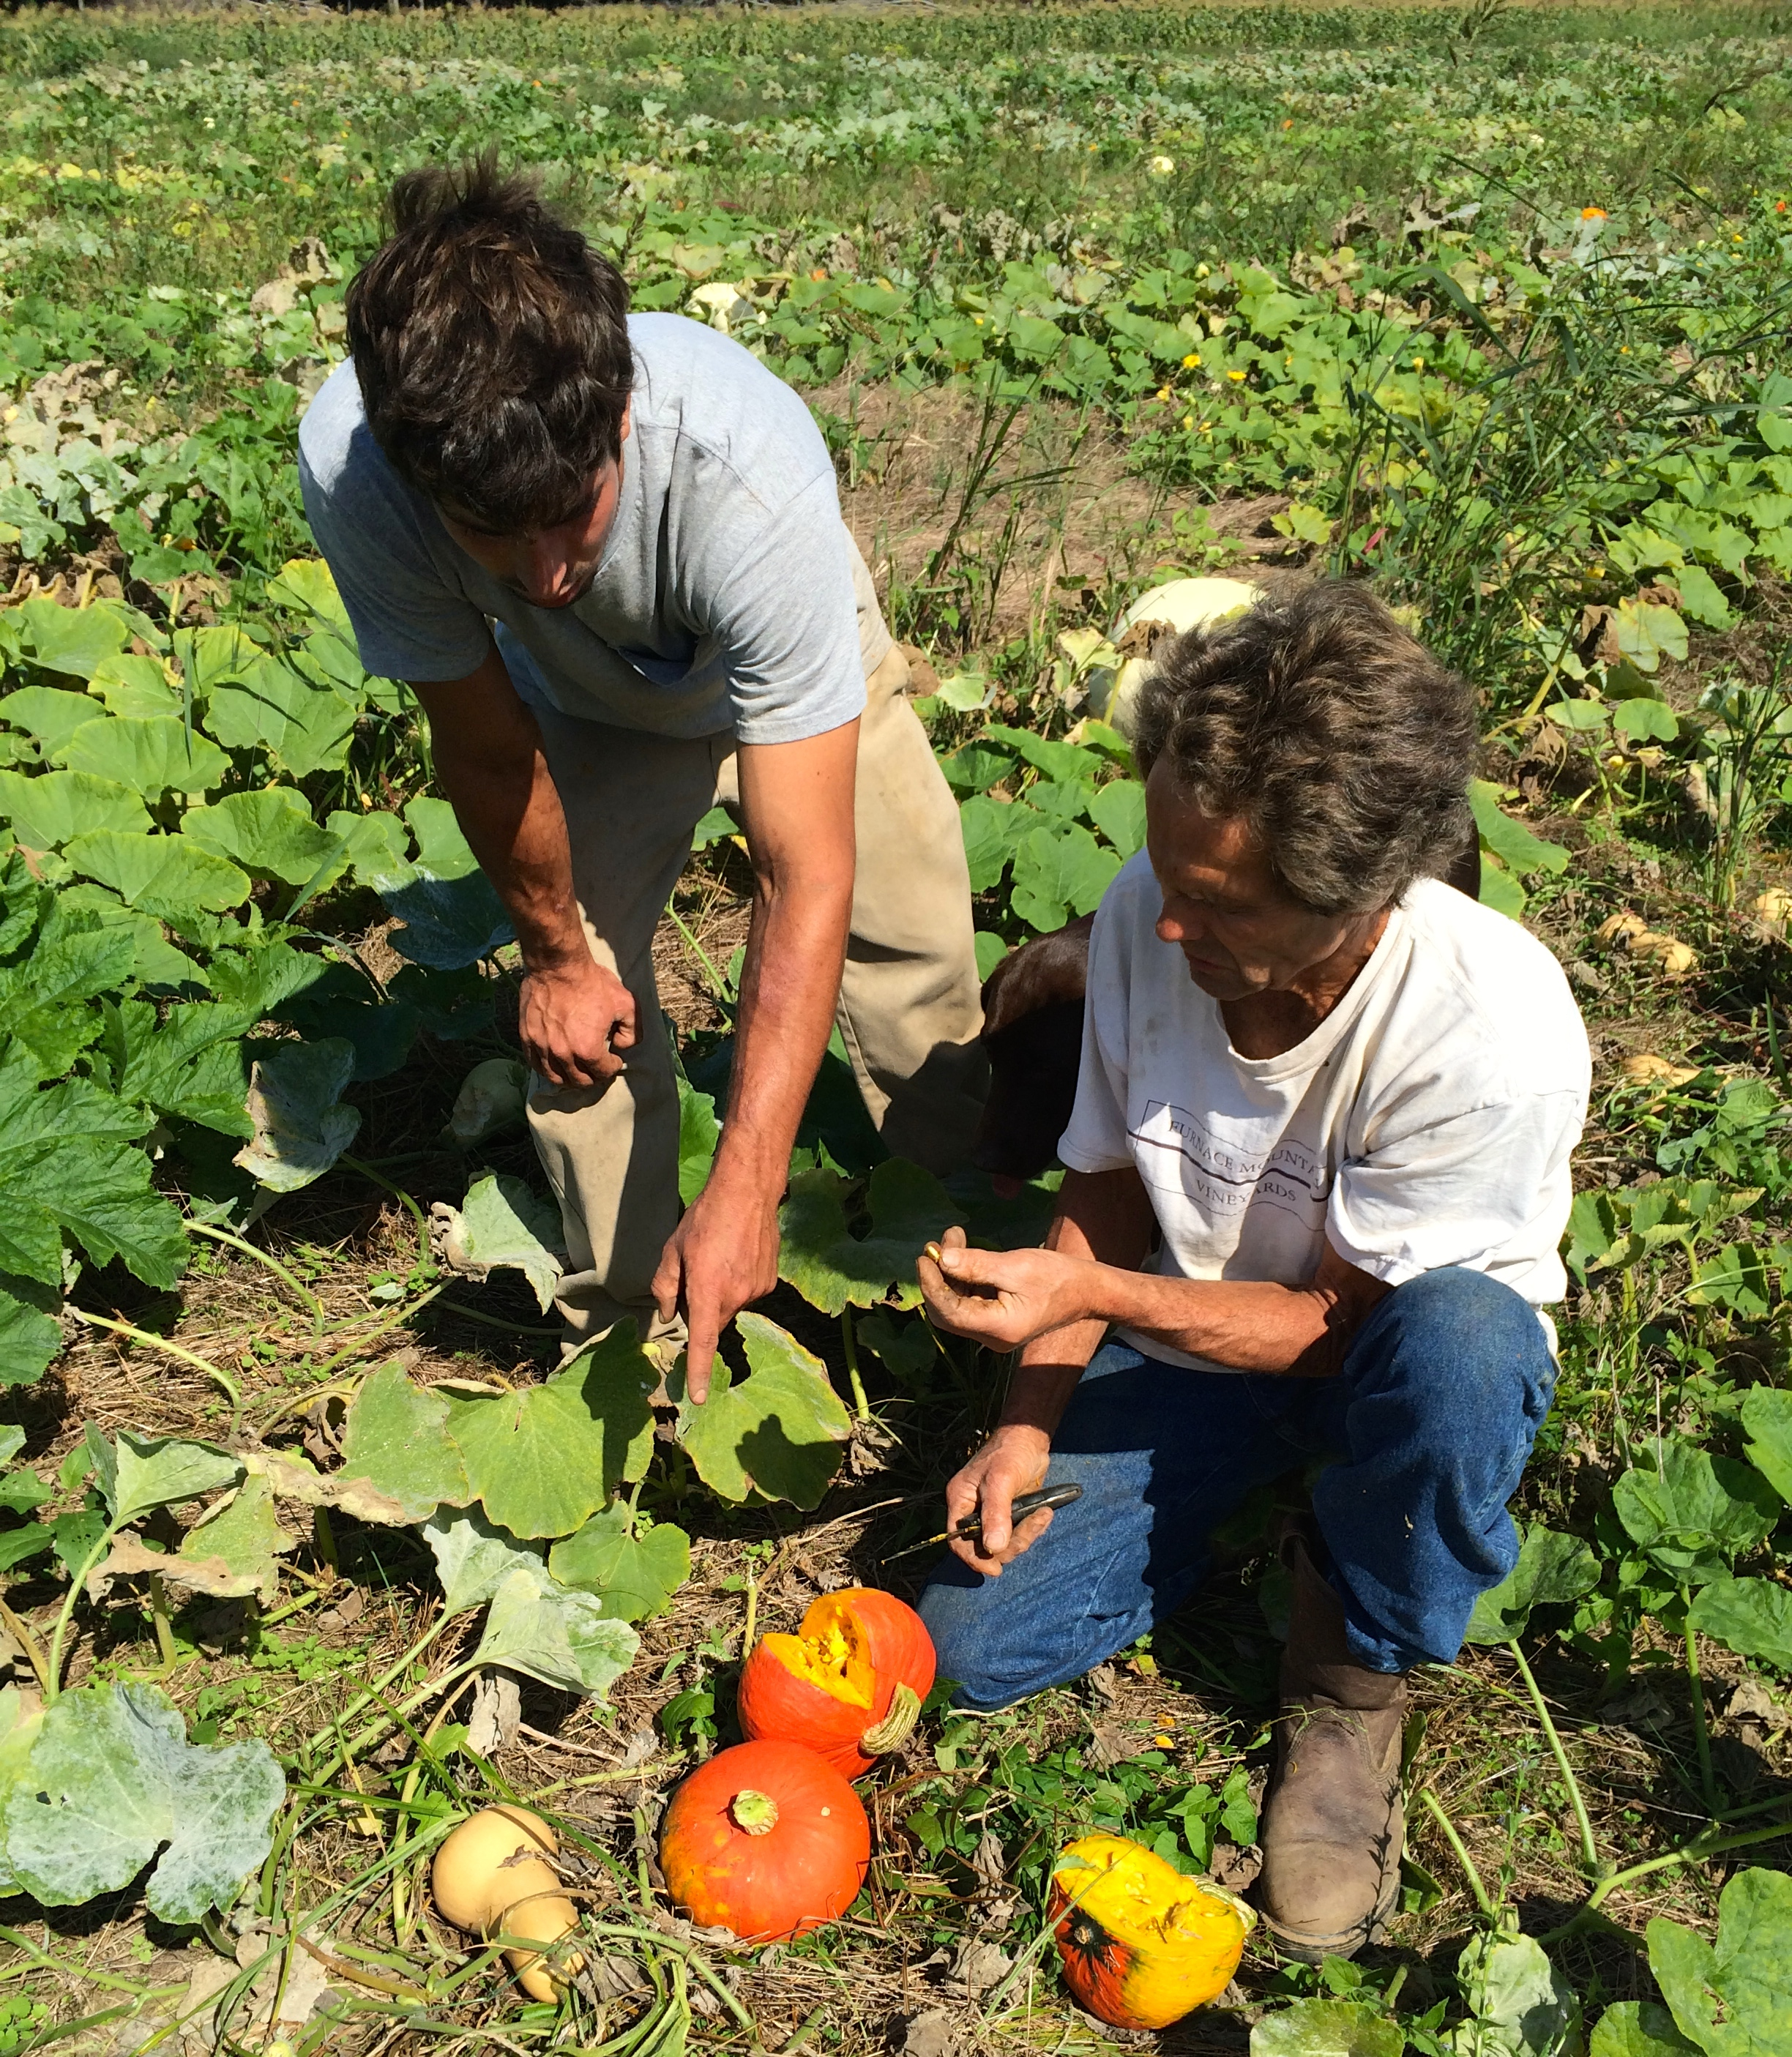 Ryan and Steven, testing for ripeness